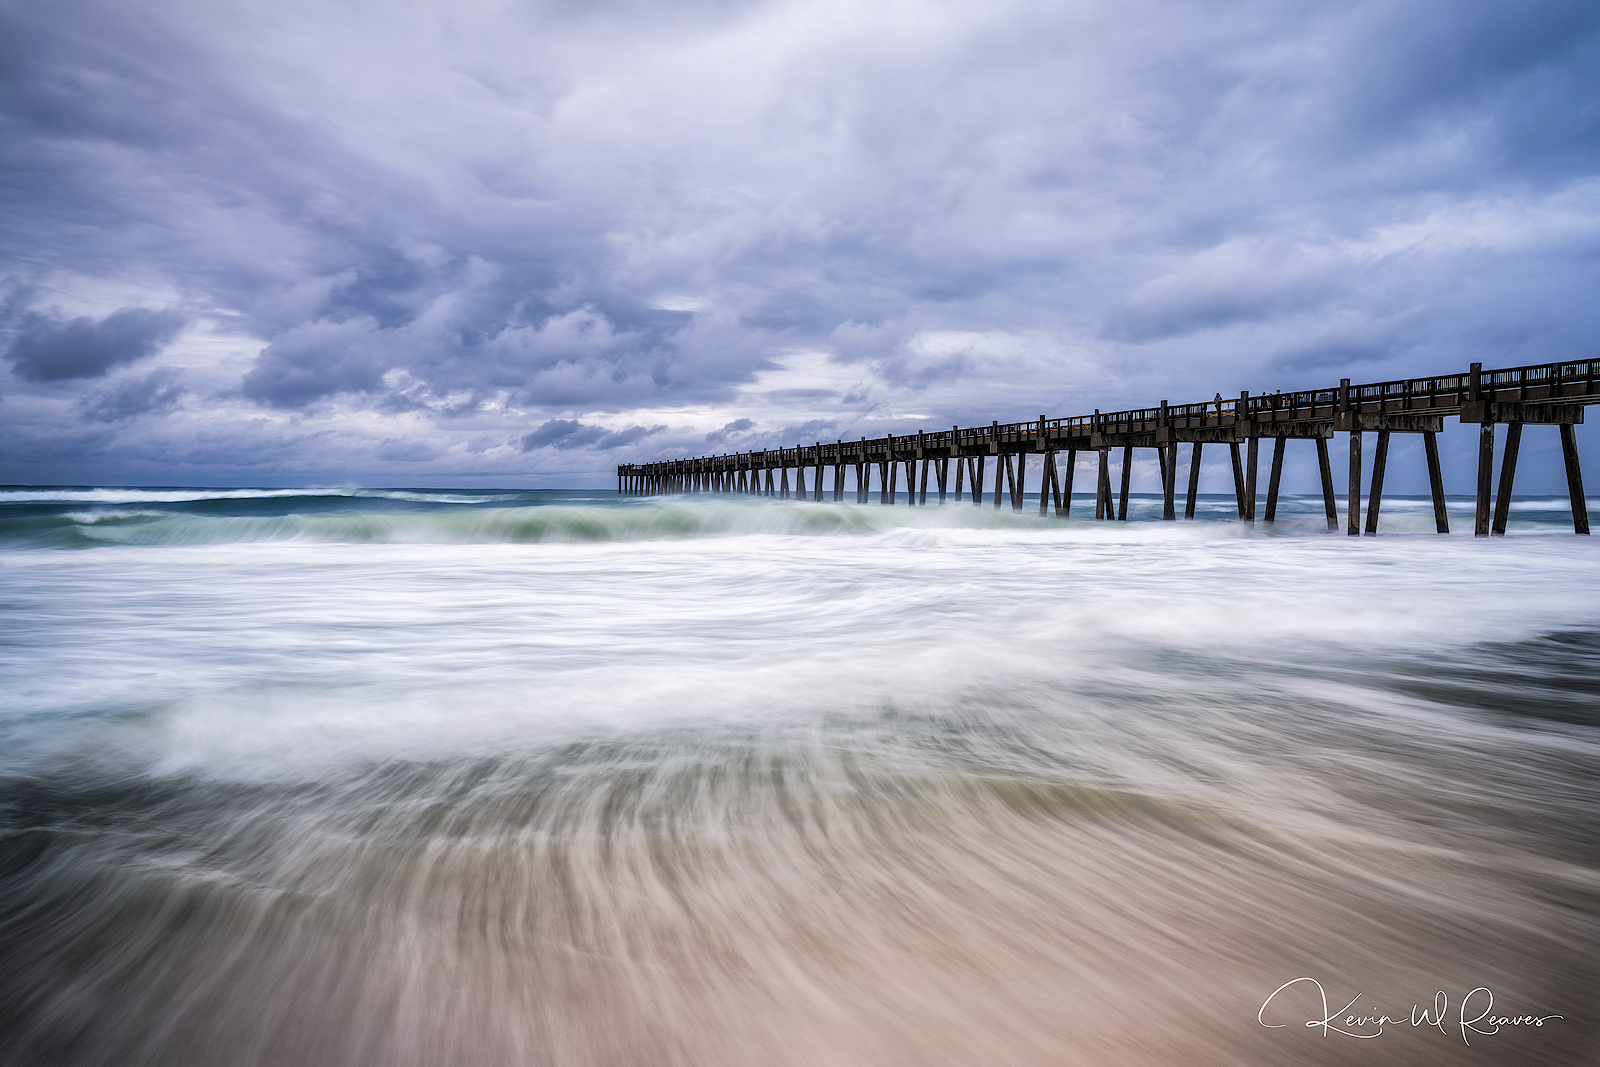 A different version with the waves creating leading lines.